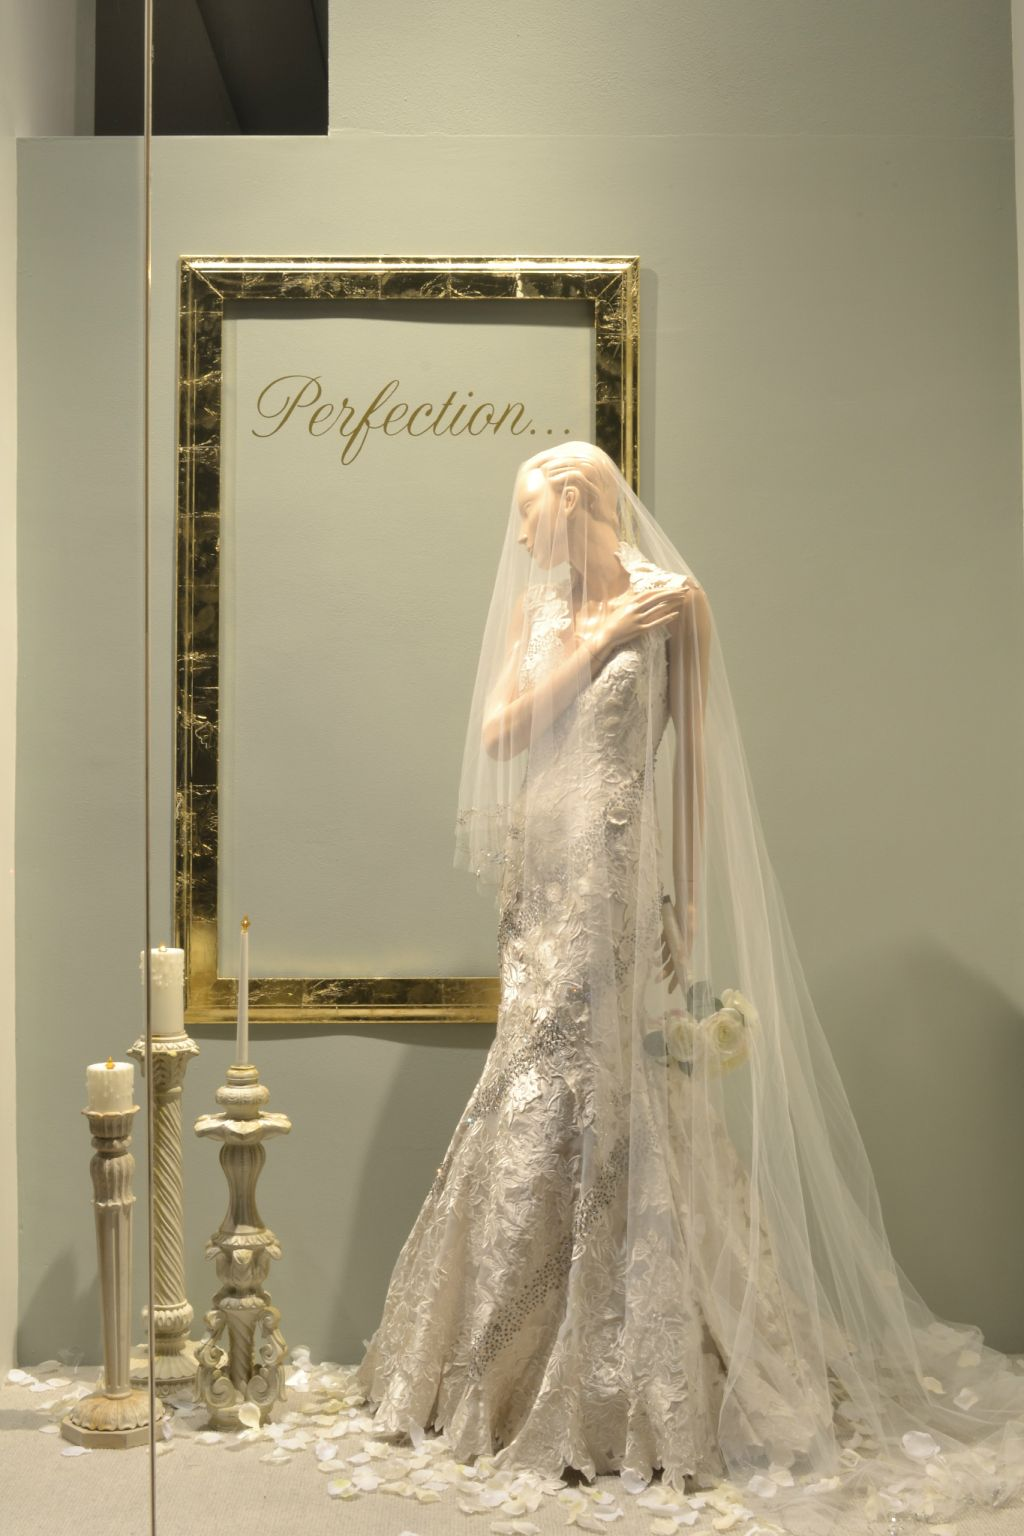 The Perfect Winter Wedding Window Display